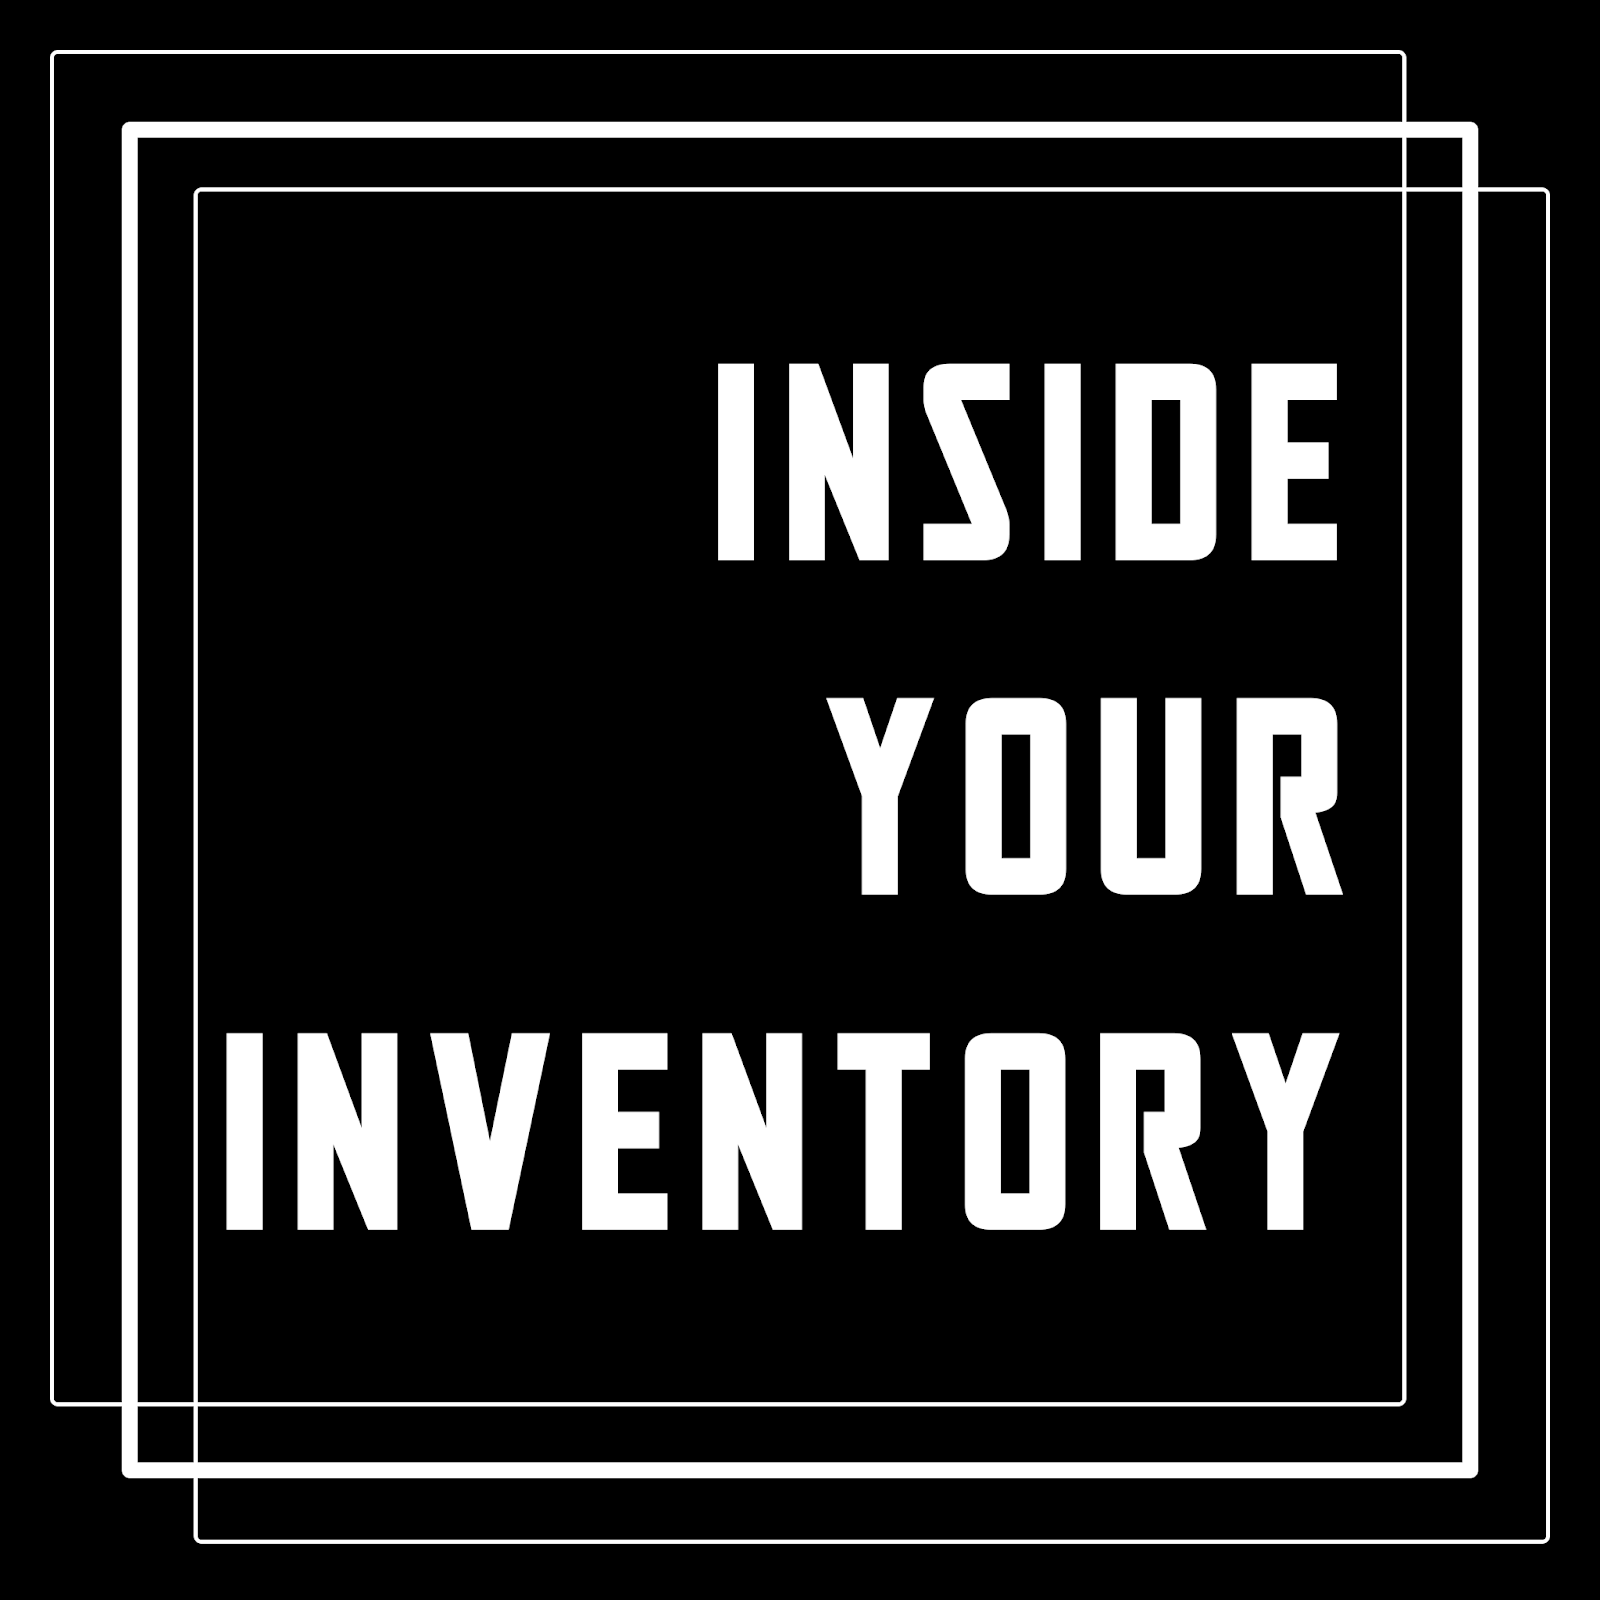 INSIDE YOUR INVENTORY